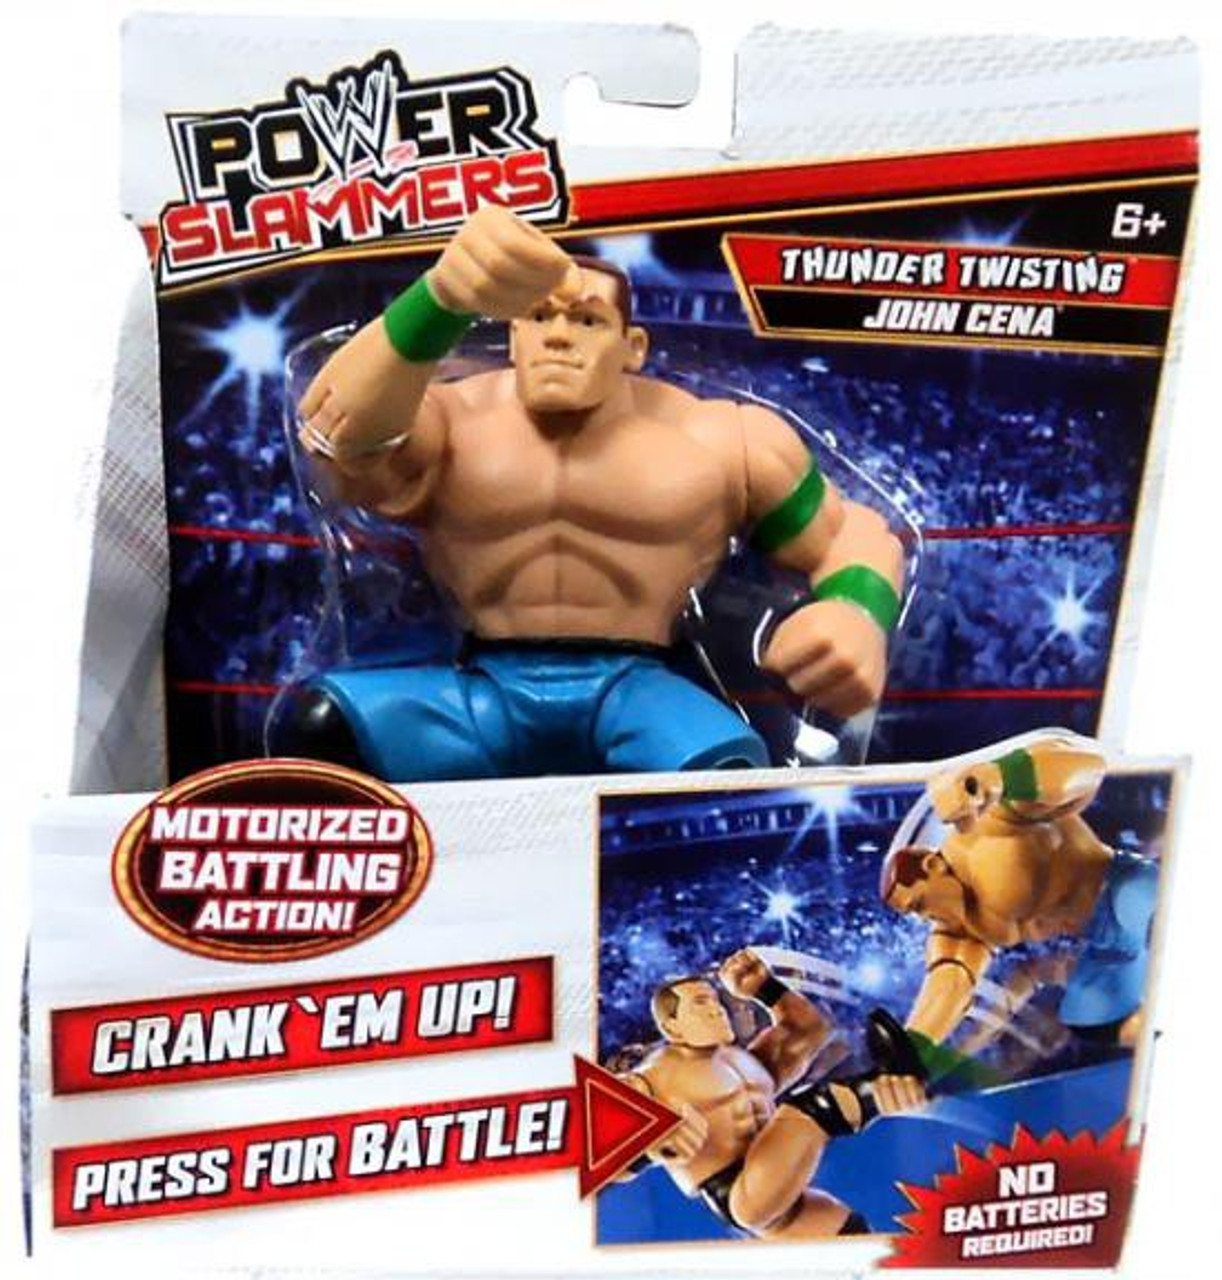 WWE Wrestling Power Slammers Thunder Twisting John Cena Action Figure